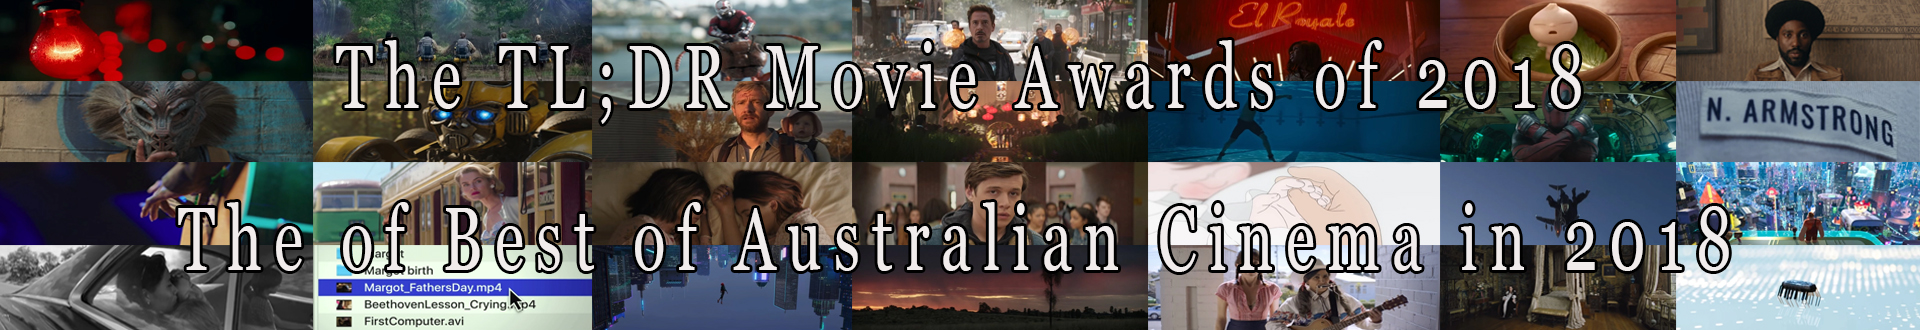 The of Best of Australian Cinema in 2018.